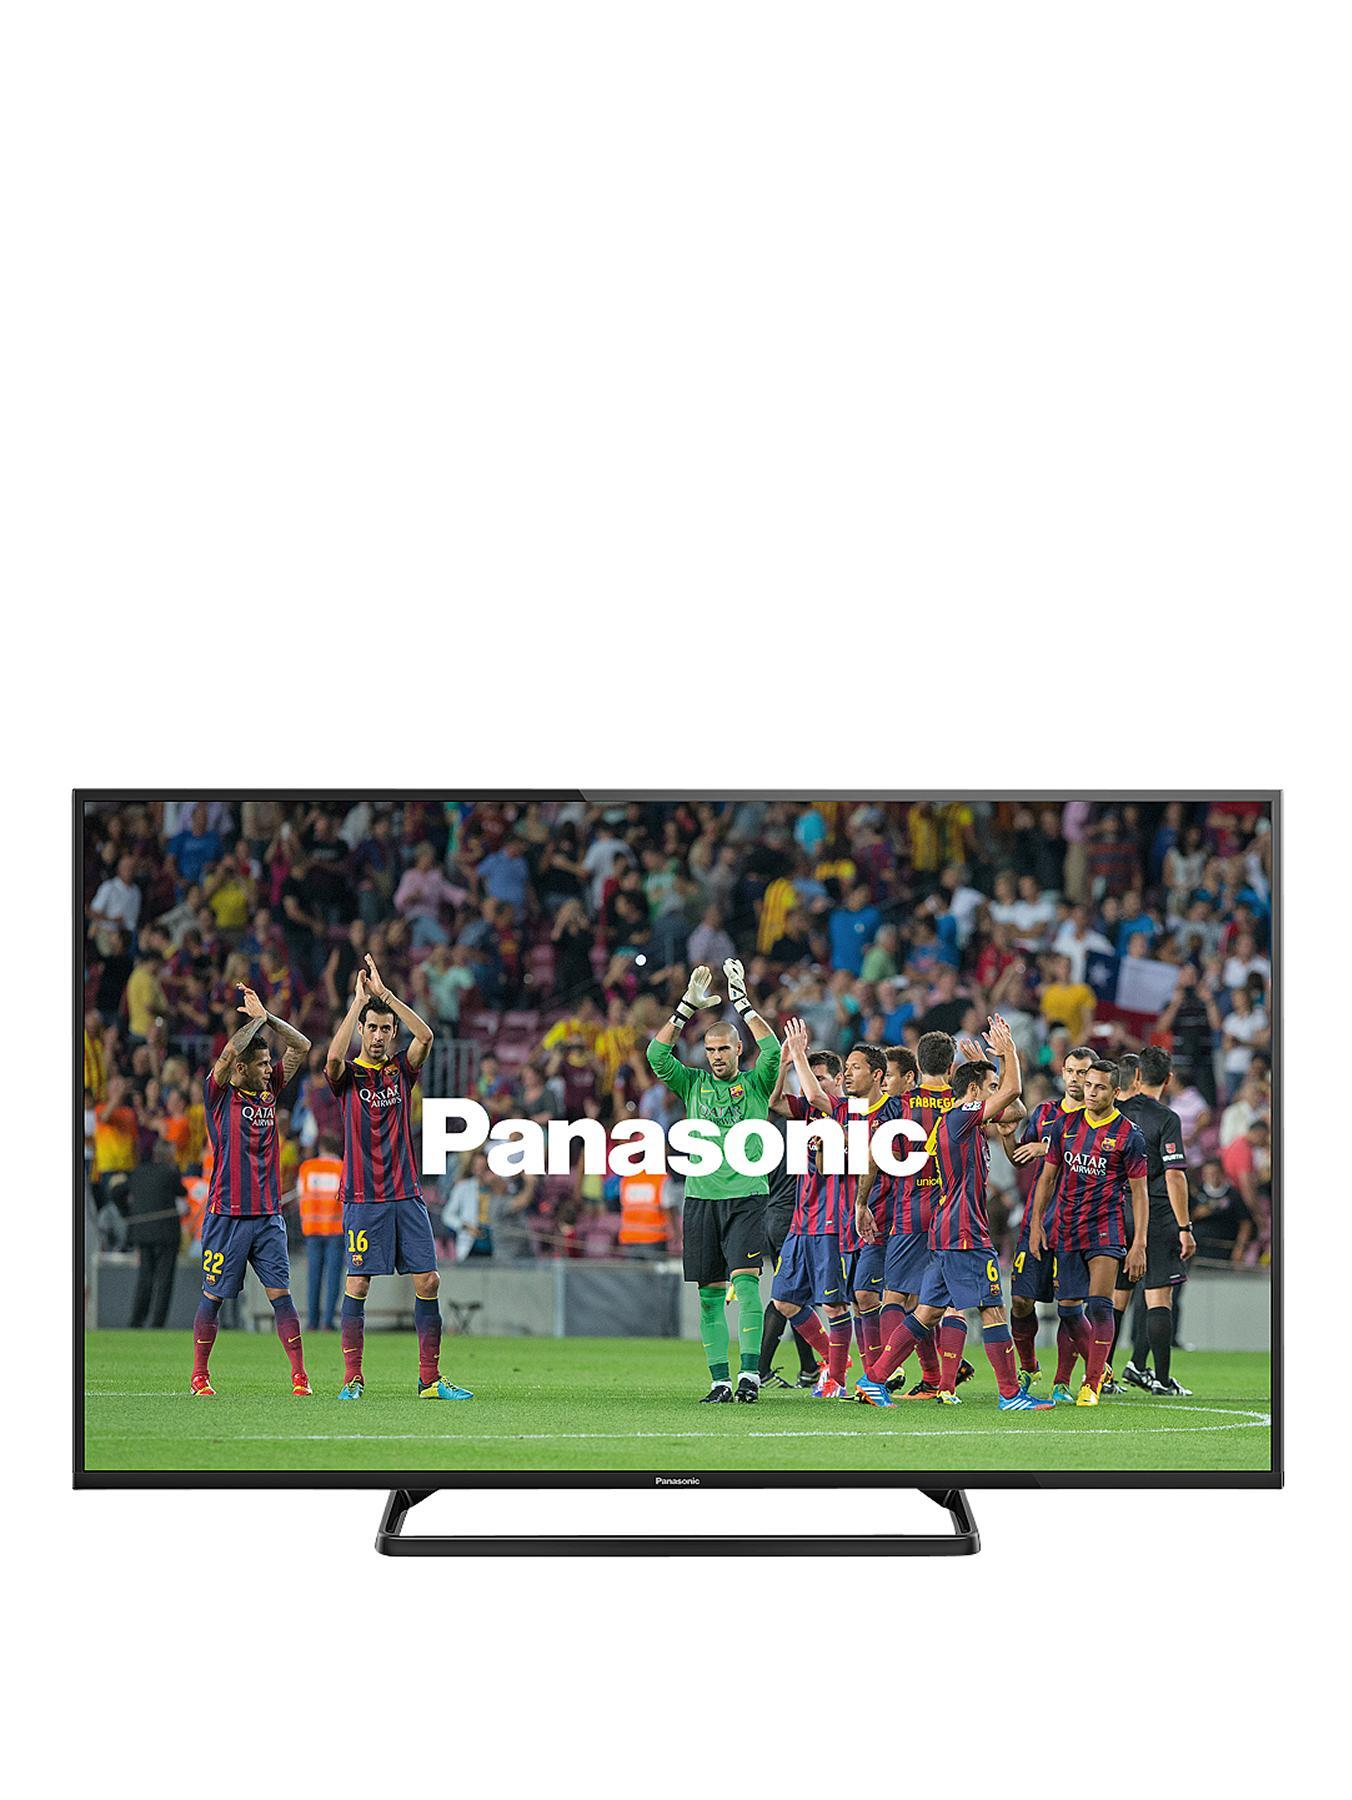 Panasonic TX-39A400B 39-inch Widescreen 1080p Full HD Slim LED TV with Freeview